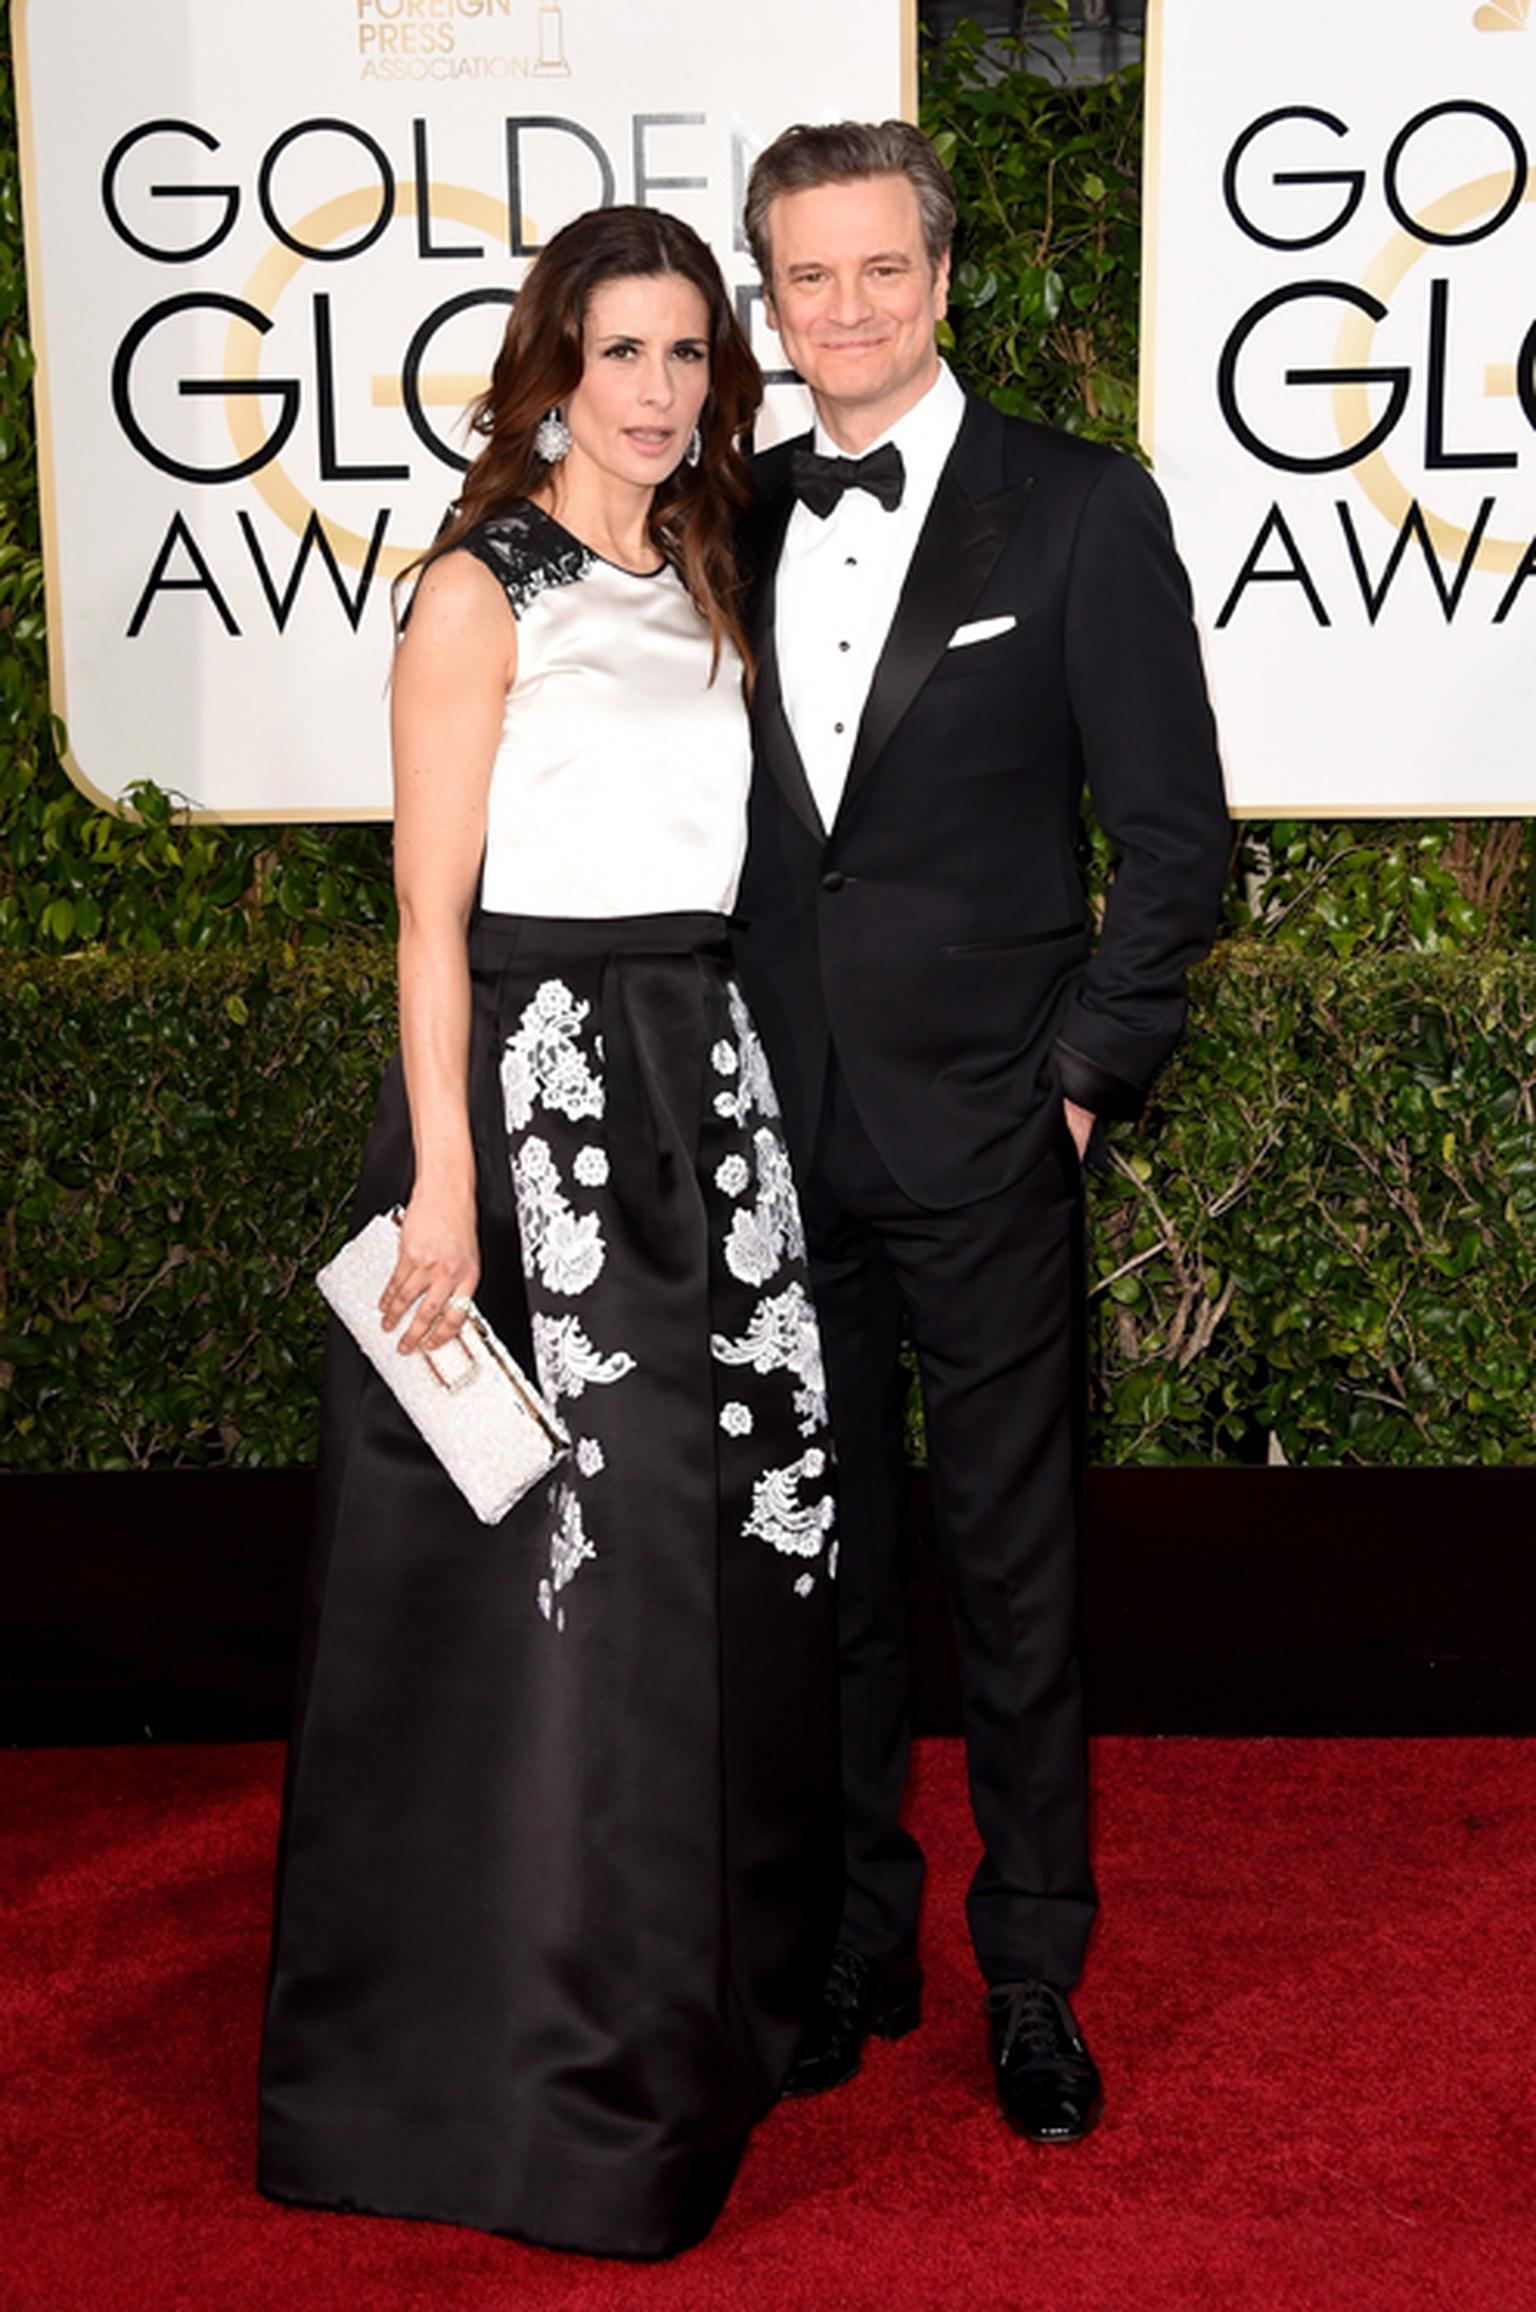 British actor Colin Firth wore an elegant Chopard L.U.C XPS watch in white gold with a black dial to the Golden Globe Awards 2015. Pictured here with his wife Olivia Firth.